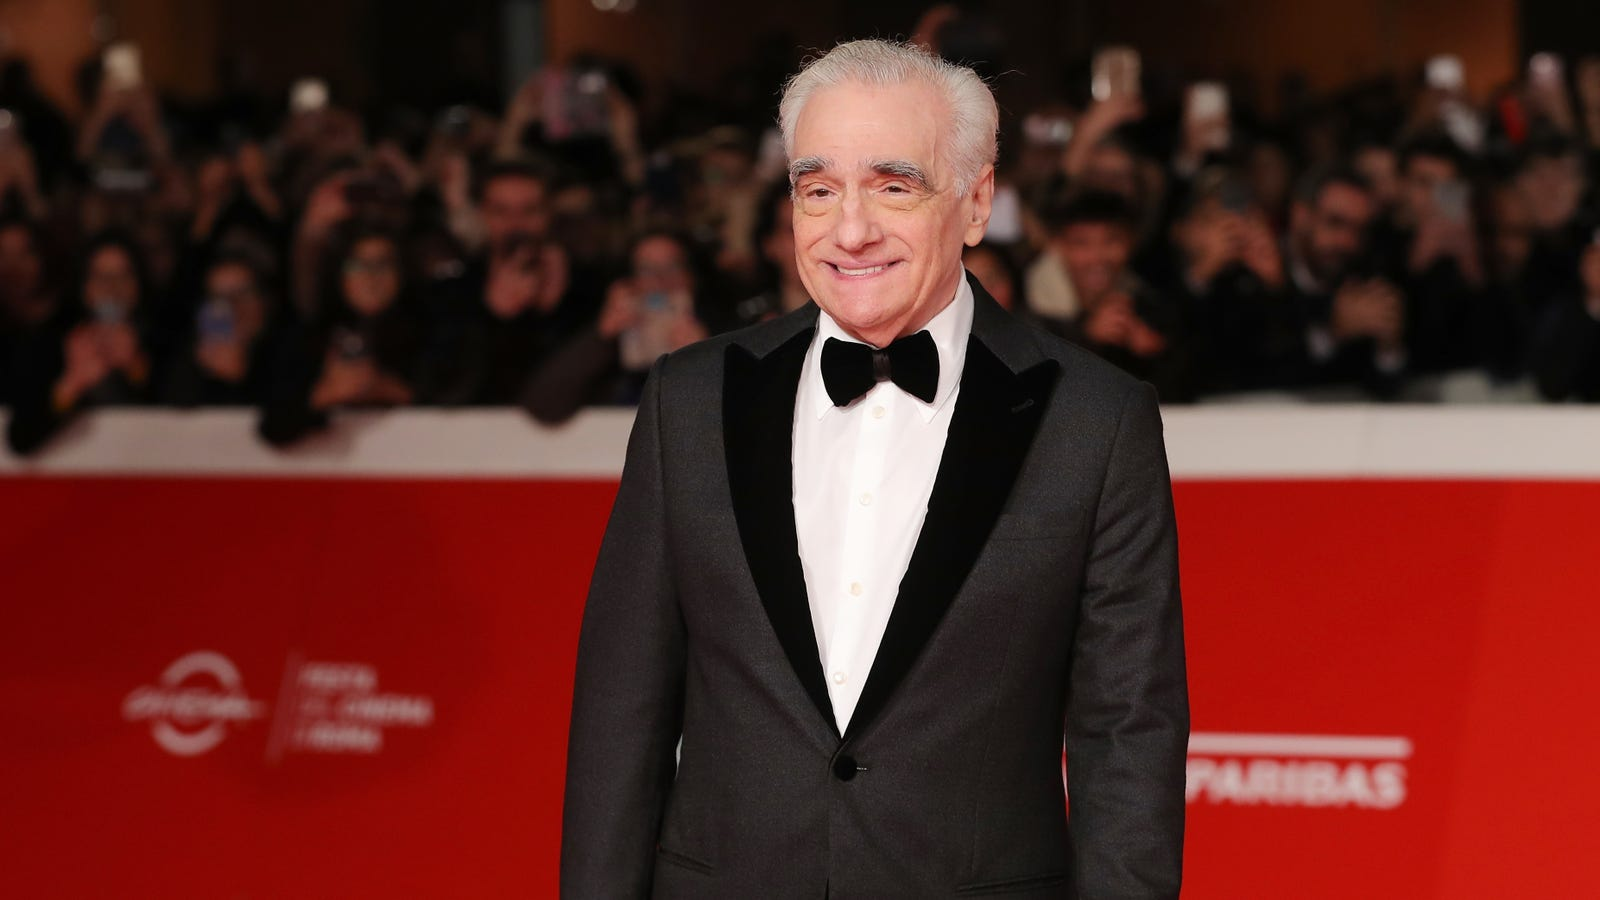 Martin Scorsese to direct a new Bob Dylan film for Netflix